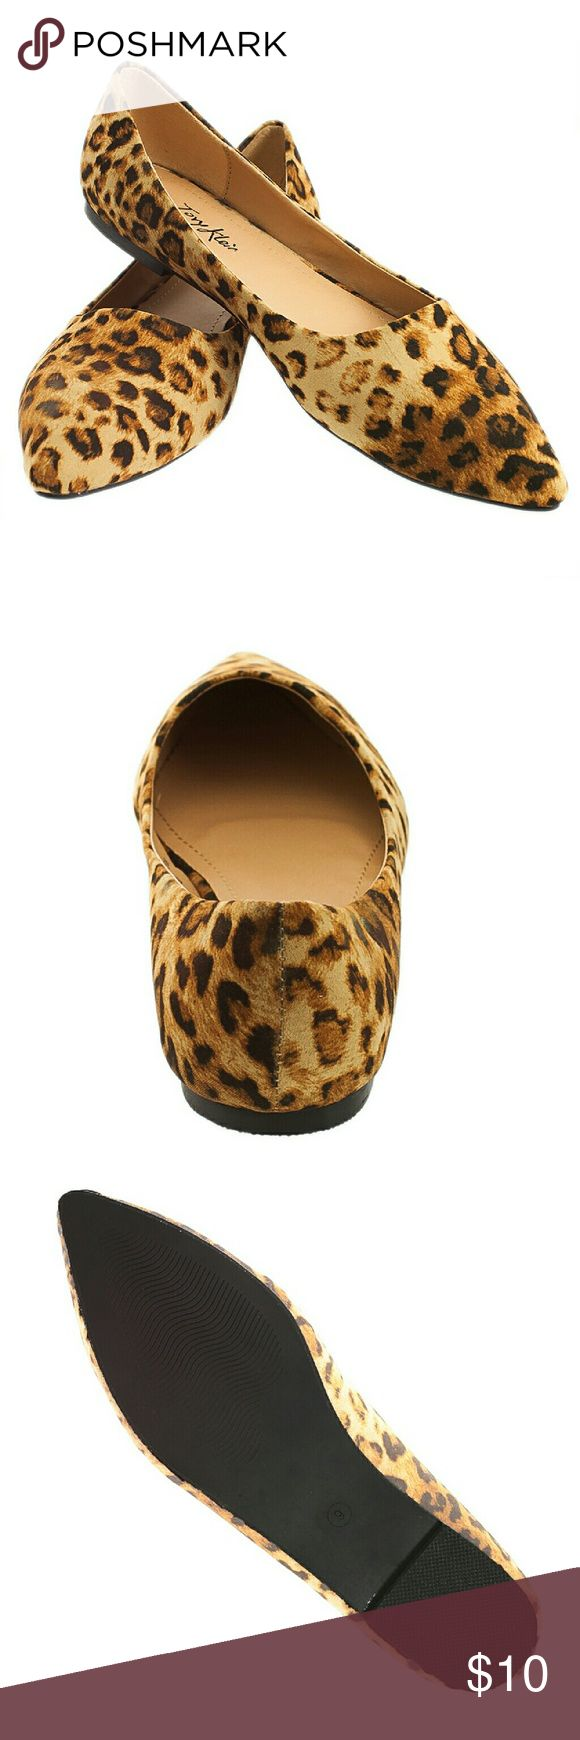 NIB Tory K Leopard Flats B1350 lt brown 8.5 Brand new Tory K light-leopard pointy-toed ballerina flats. Comfortable and true to size. Selling super cheap because the box they came in is a little damaged, but the flats are in perfect condition! Tory K Shoes Flats & Loafers